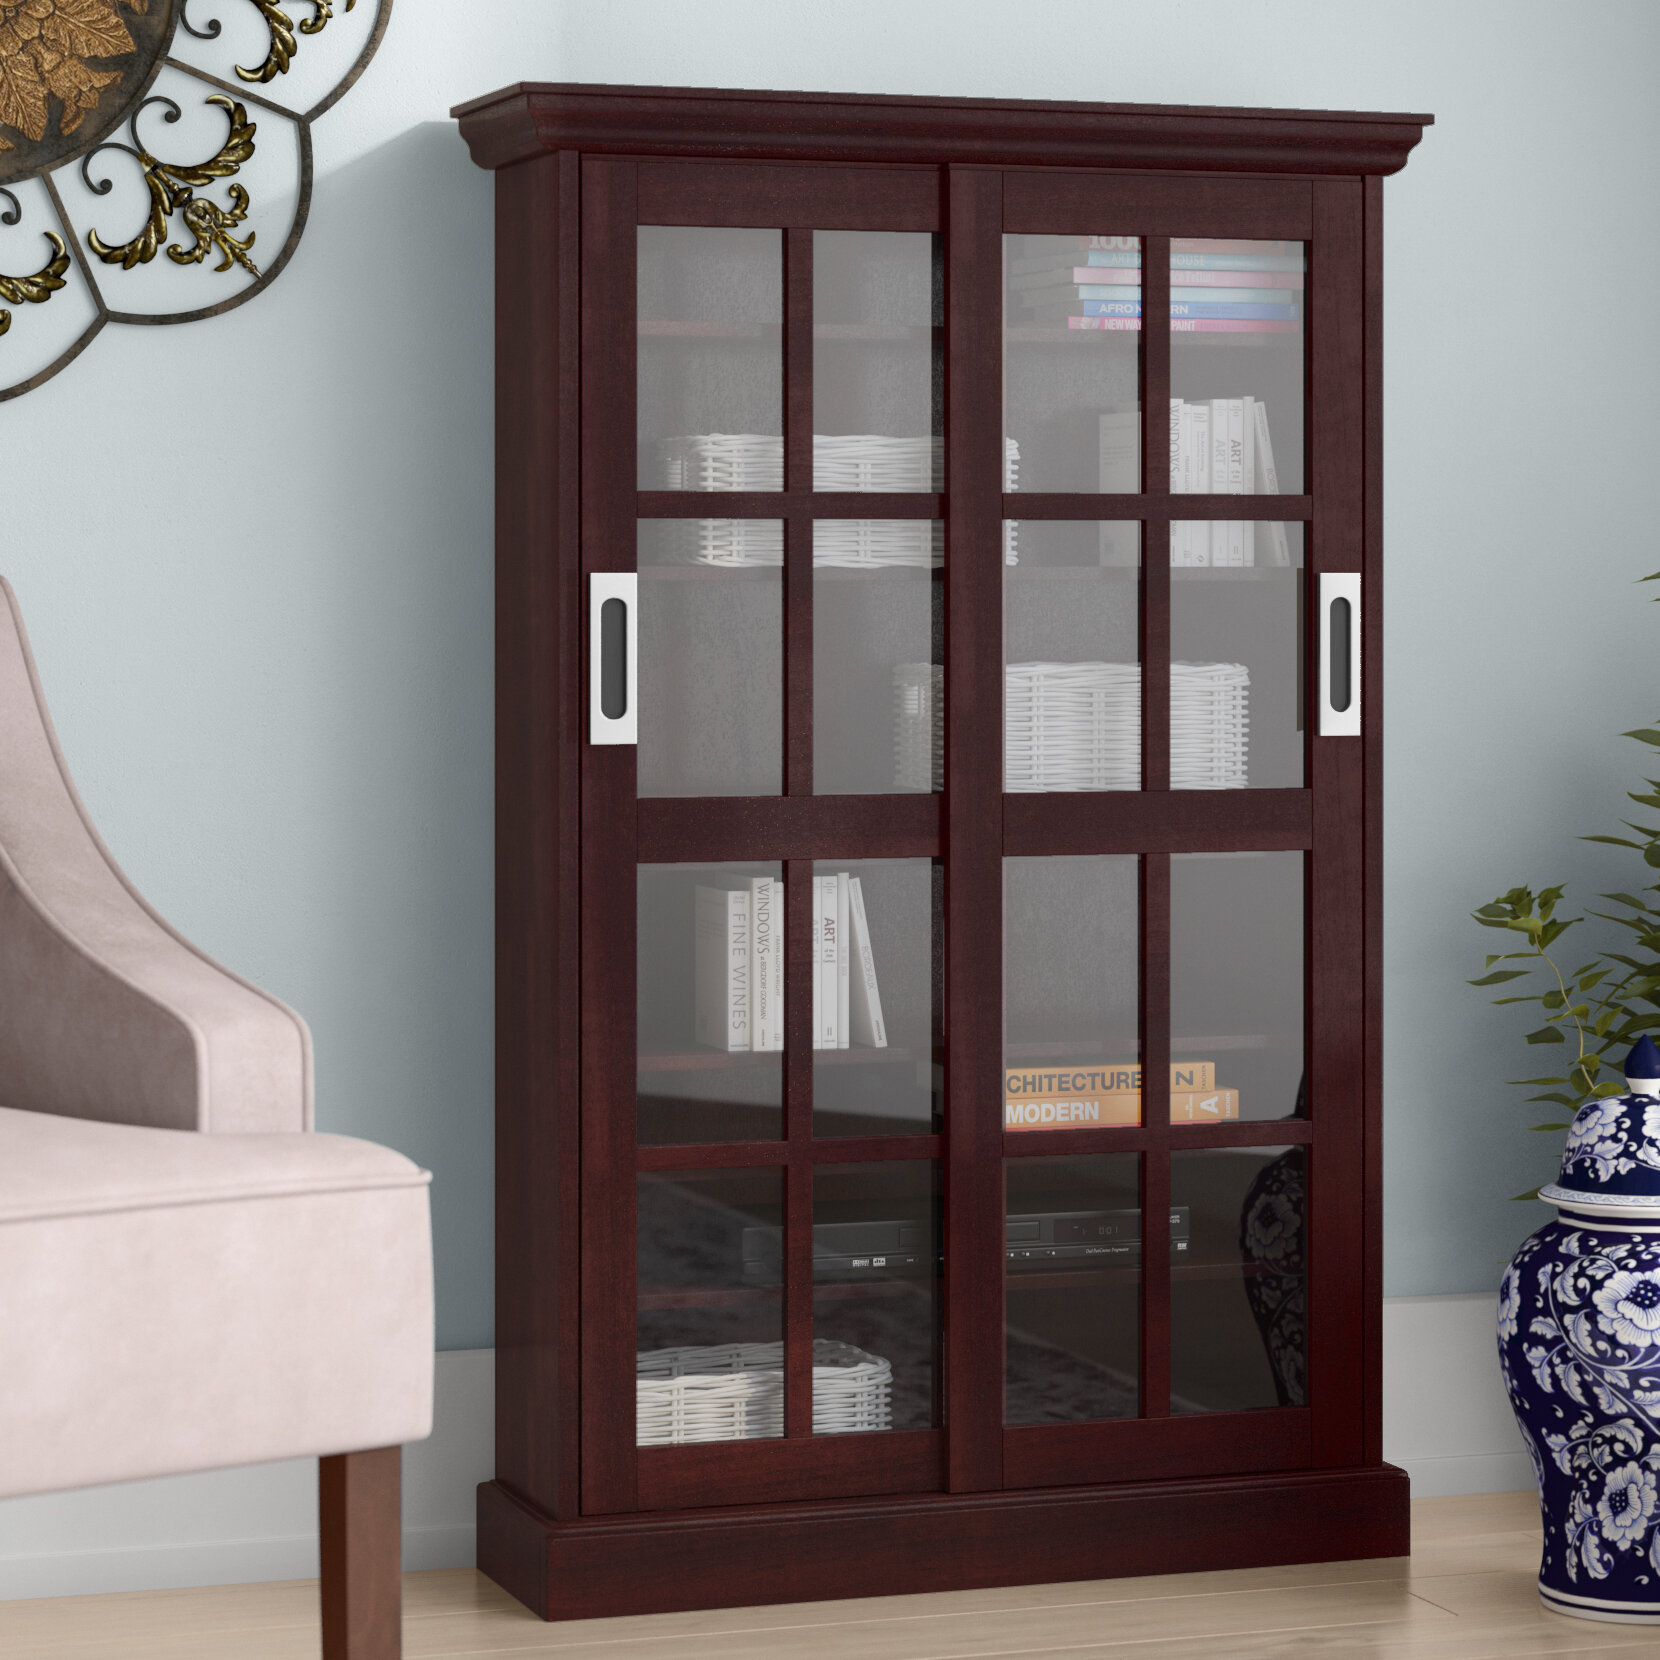 Darby Home Co Sliding Door Media Cabinet U0026 Reviews | Wayfair